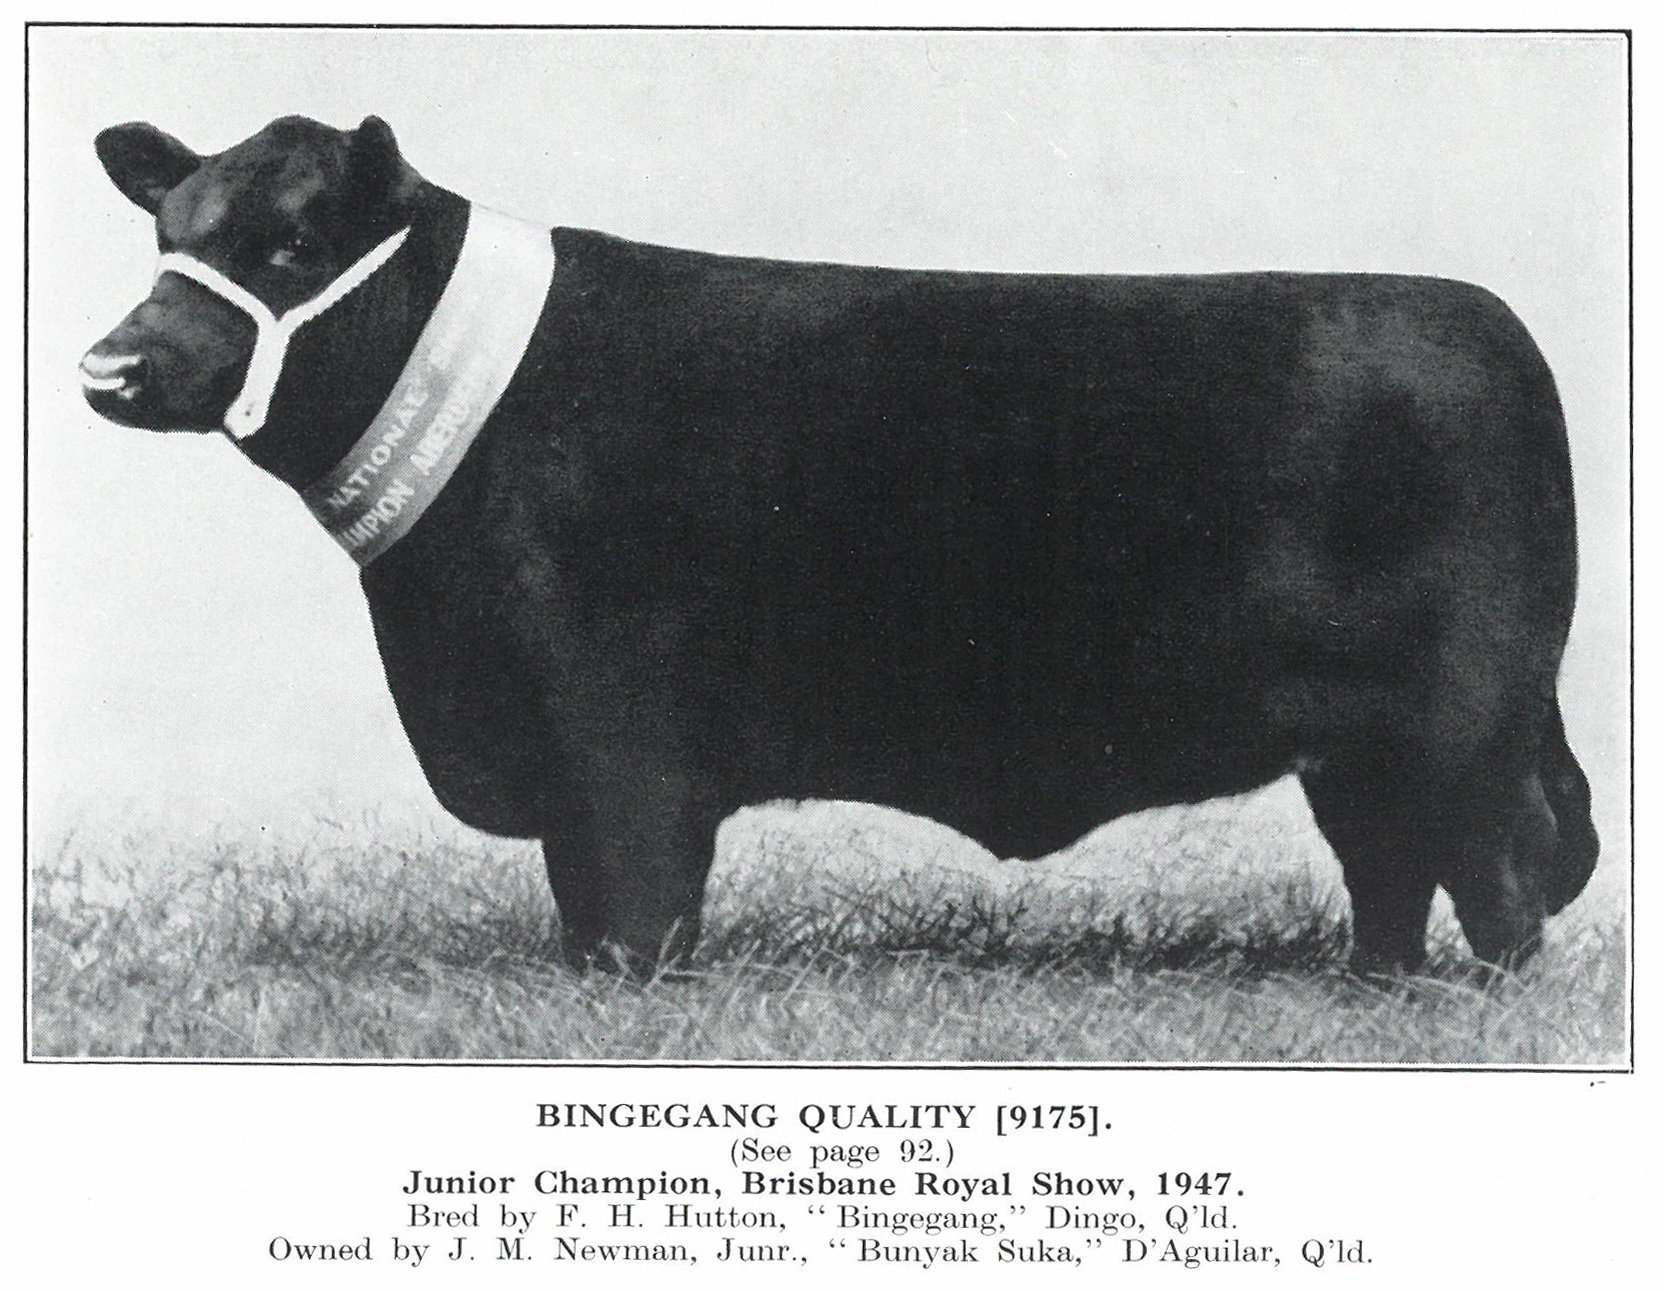 Bingegang Quality